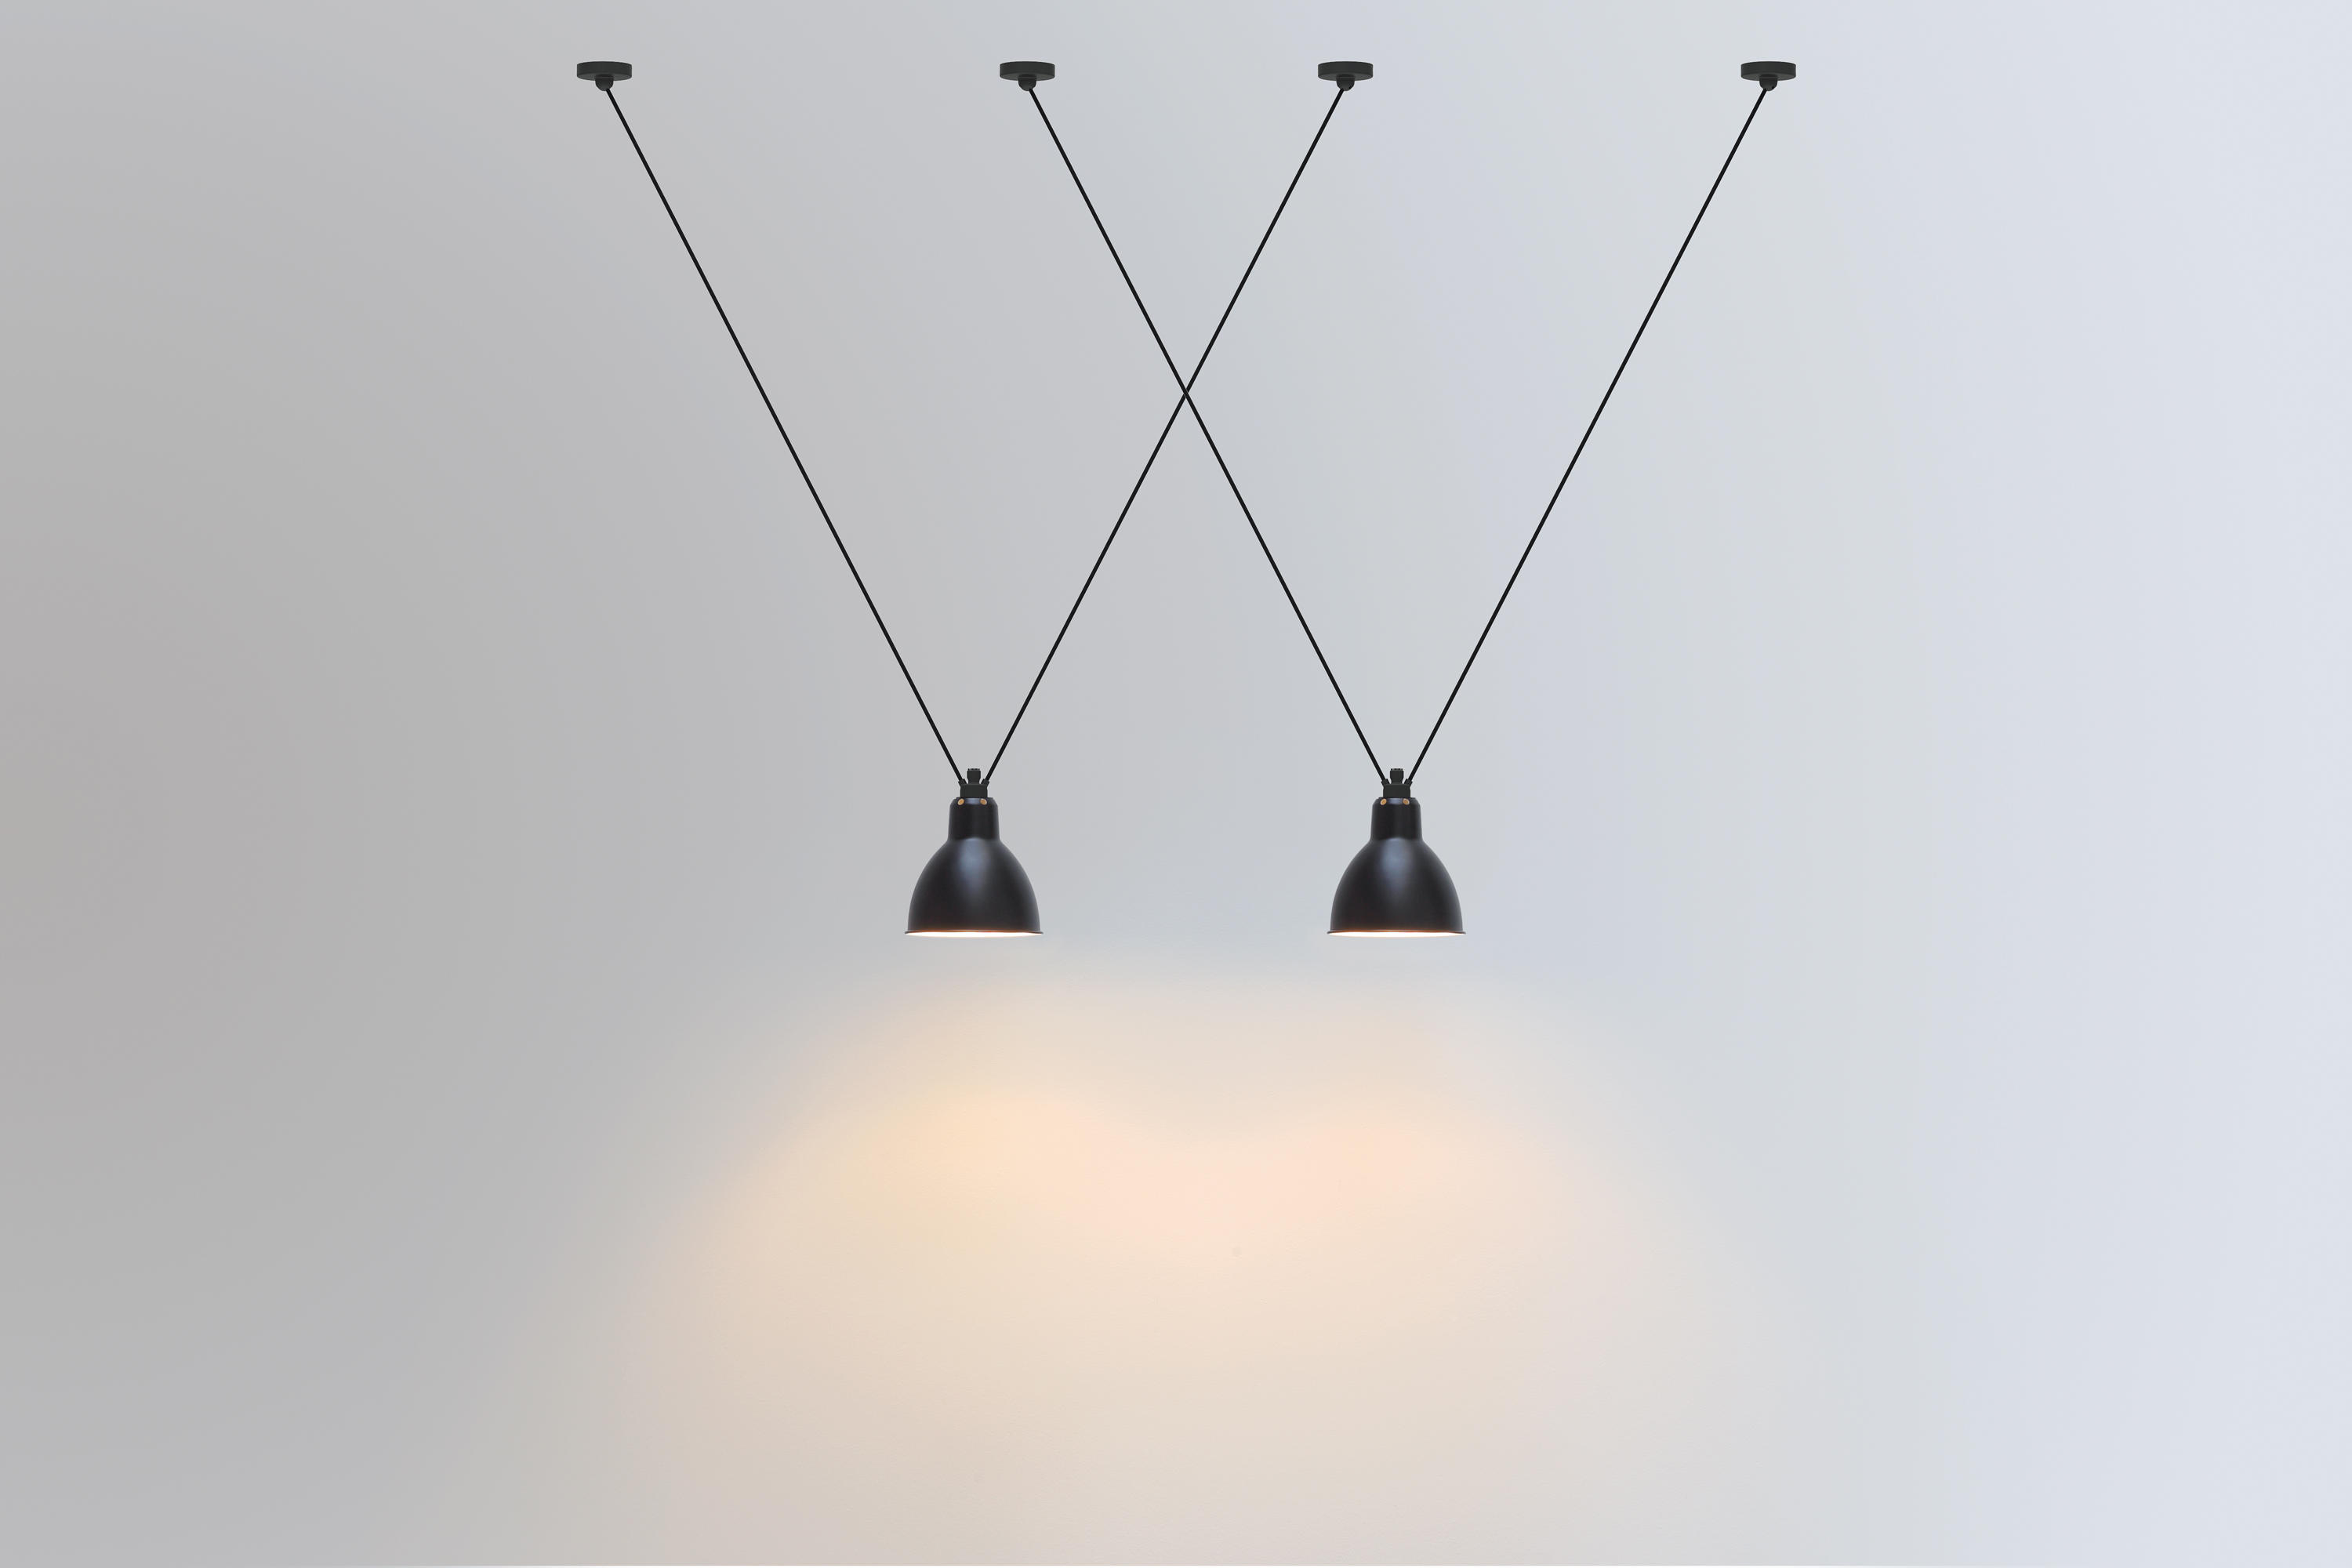 lampe gras les acrobates de gras n 322 black general. Black Bedroom Furniture Sets. Home Design Ideas